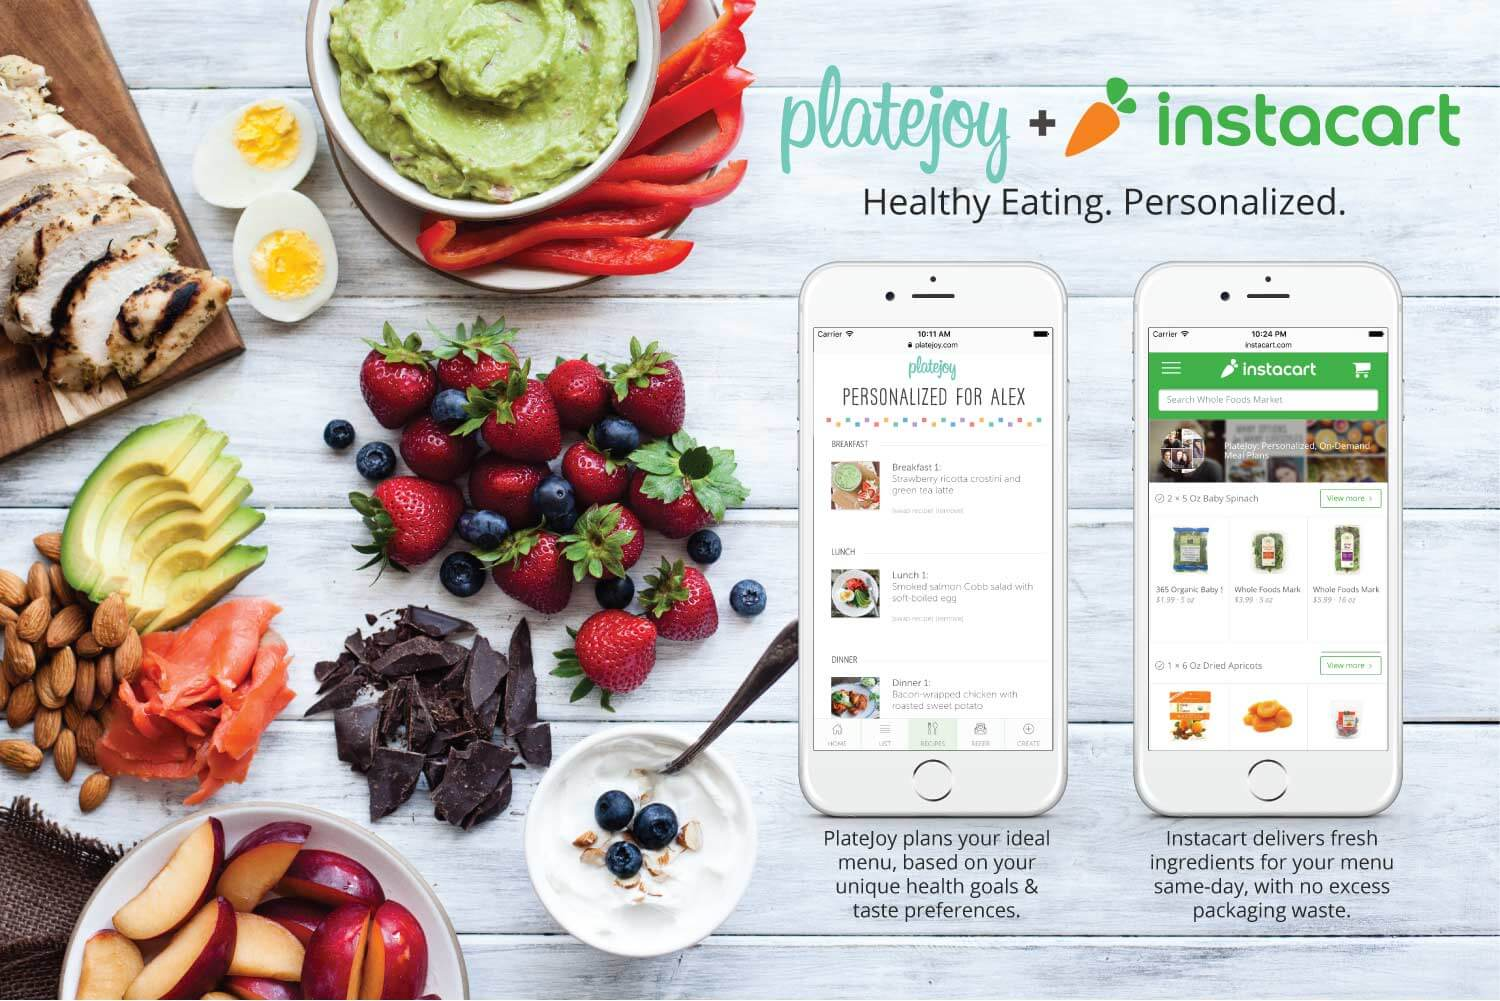 PlateJoy and Instacart partnership screens